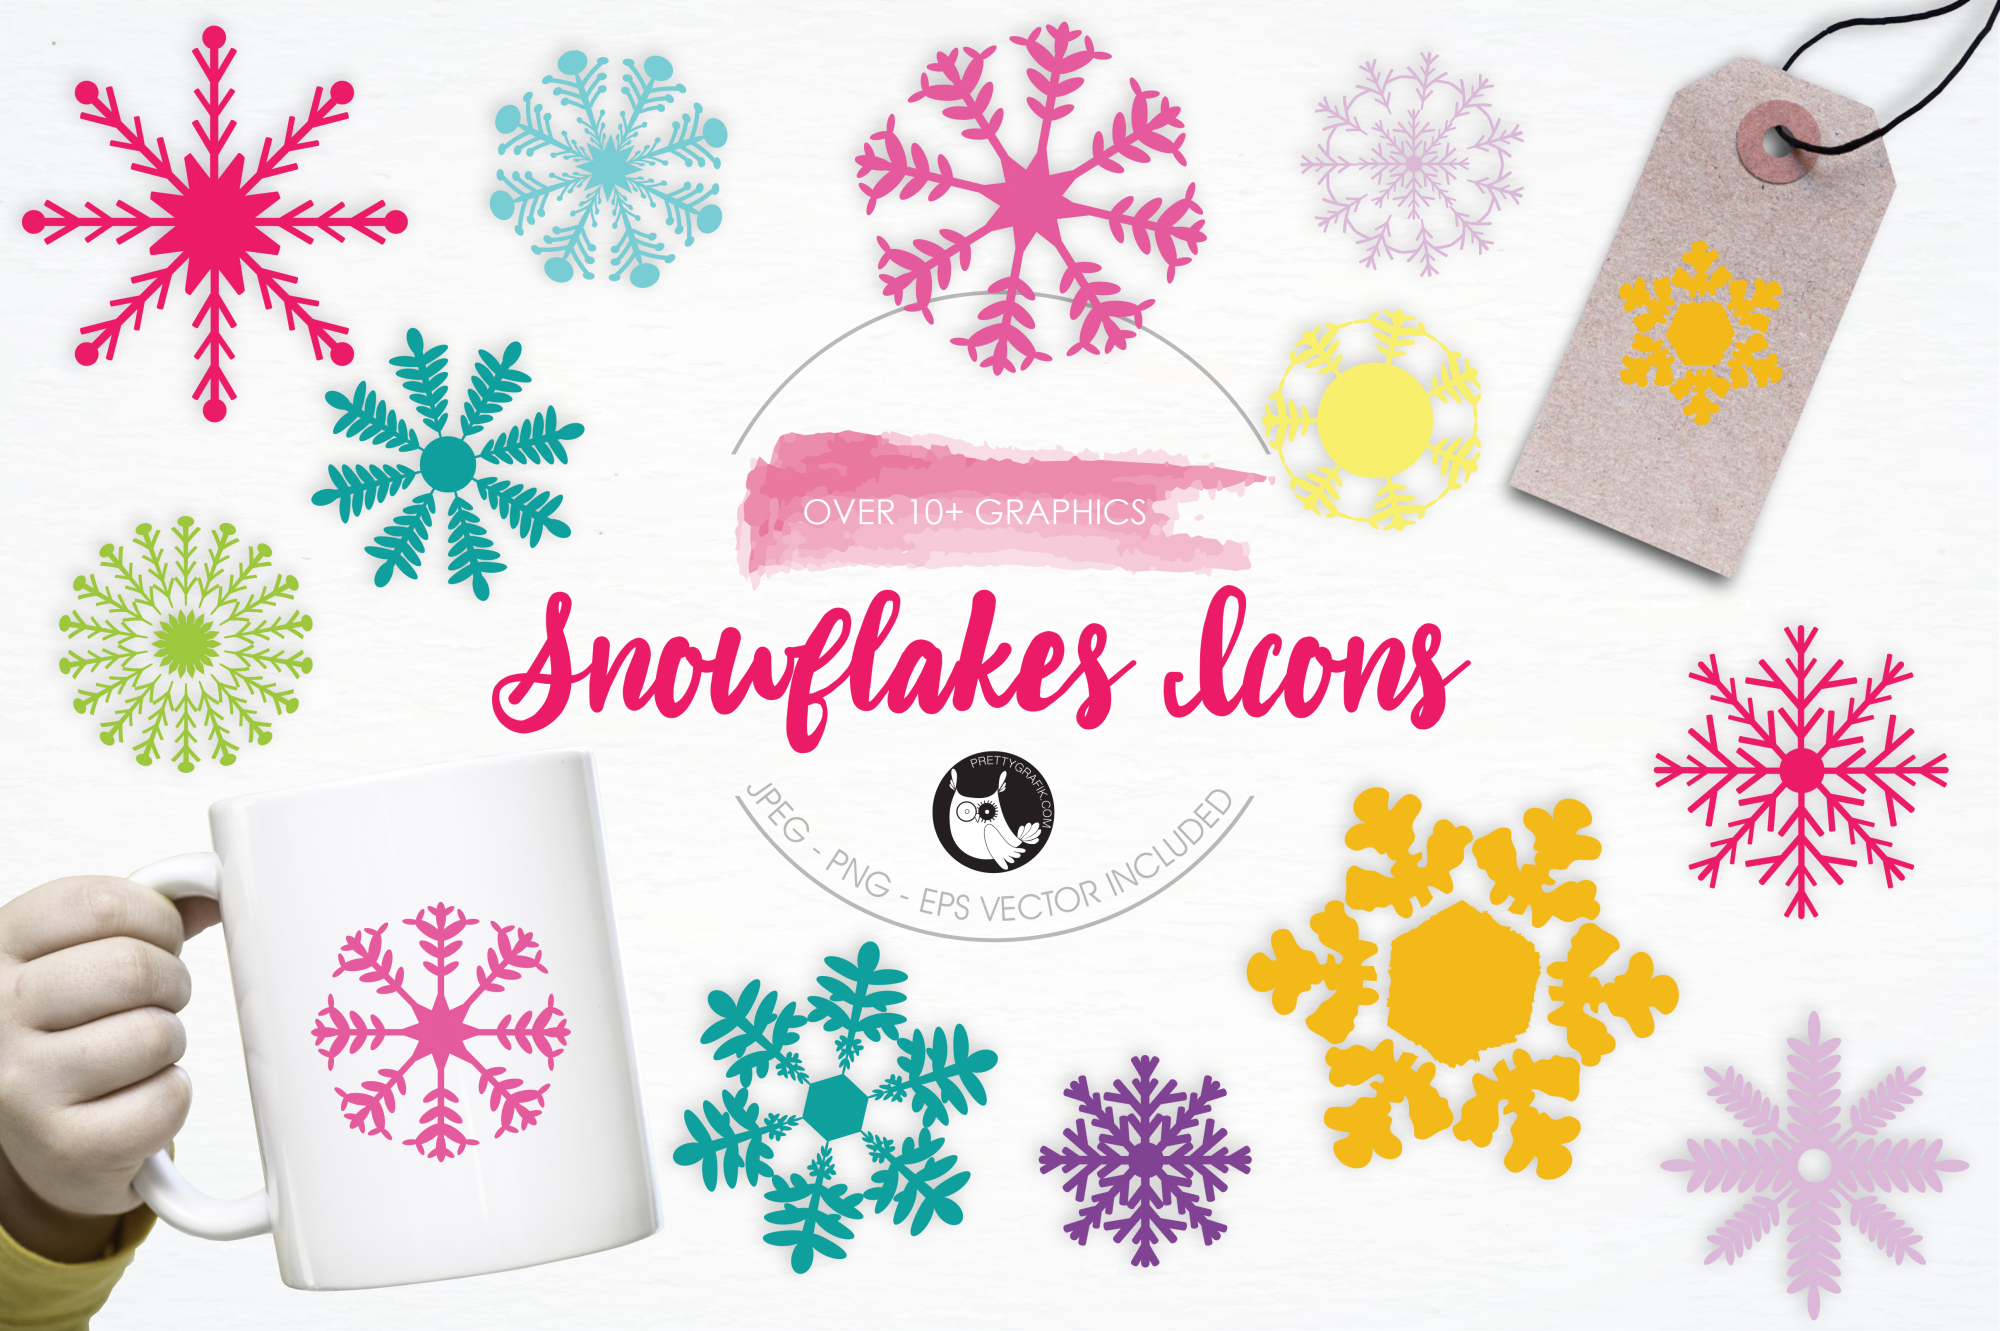 Snowflakes Icons graphics and illustrations example image 1